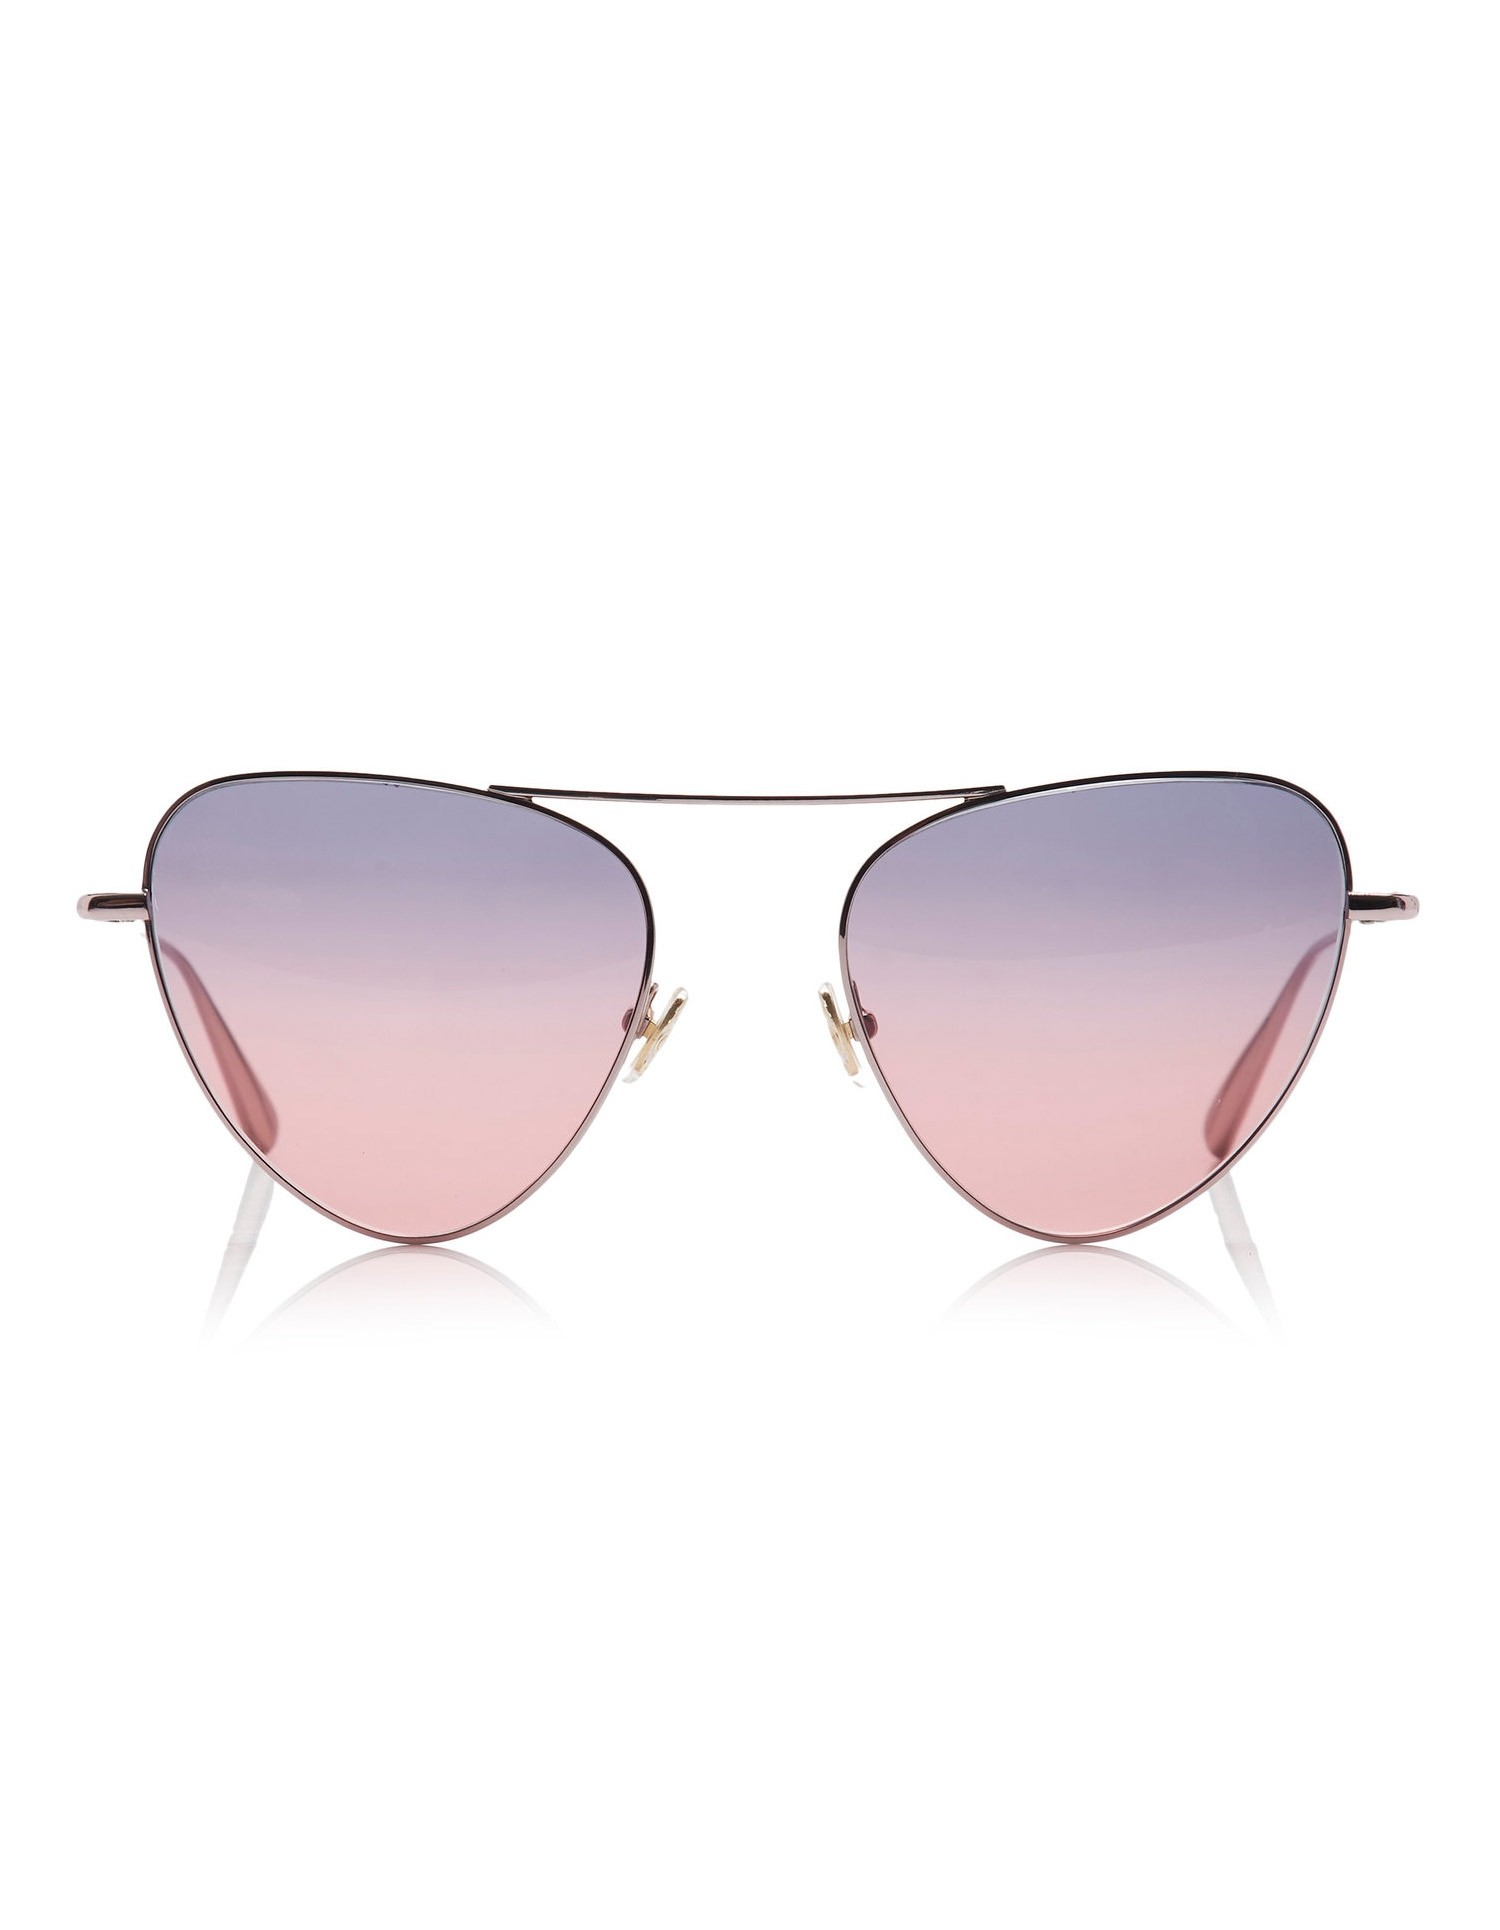 Monse Erika Sunglasses with Purple and Pink Ombre Shades